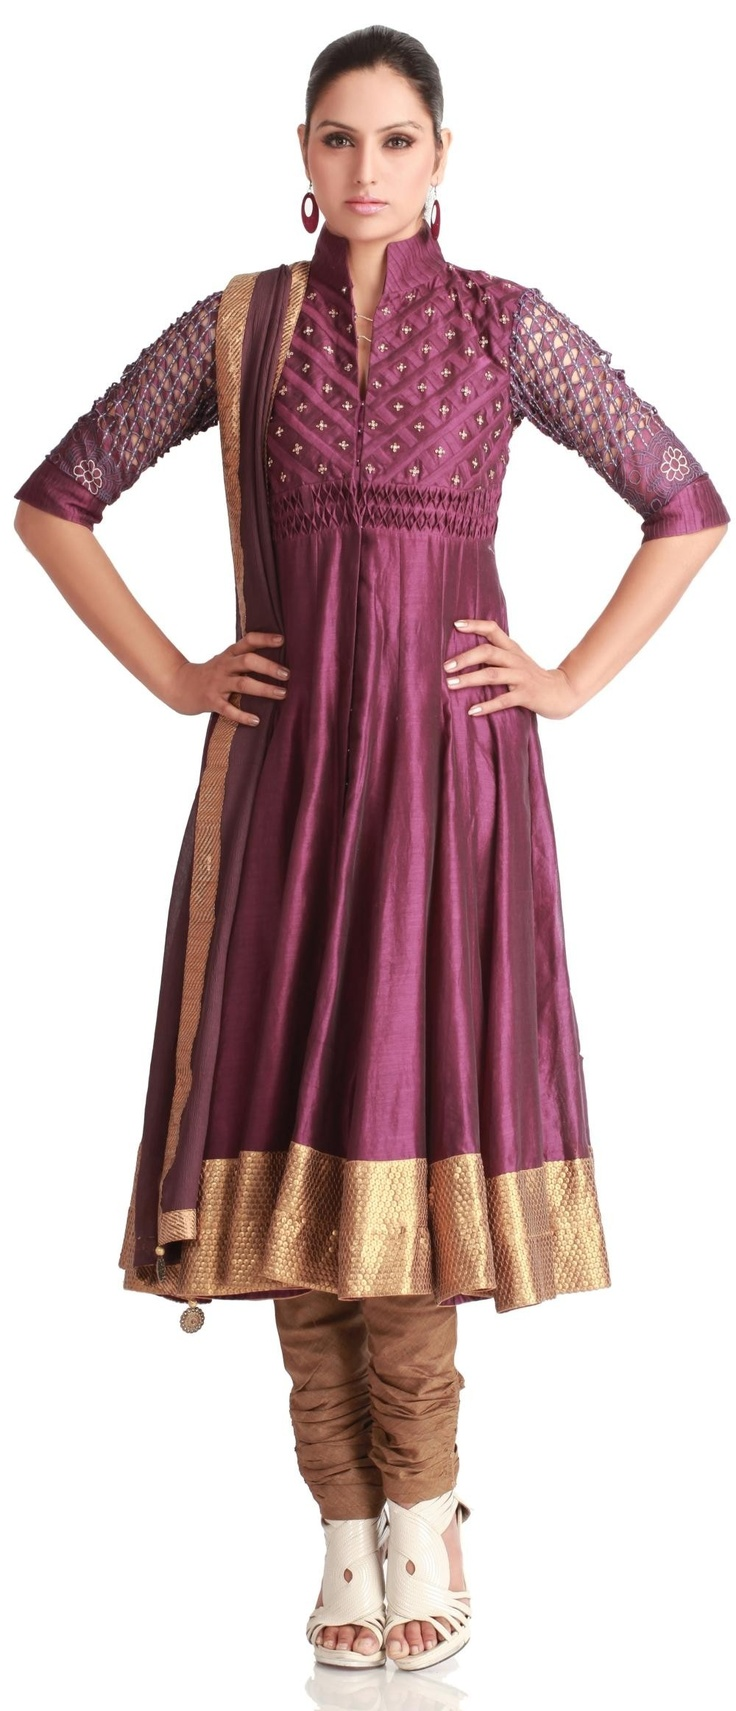 Wine Jacket Styled Kurta Churidar ideal for evening occasions. Buy online at Angarkh.com